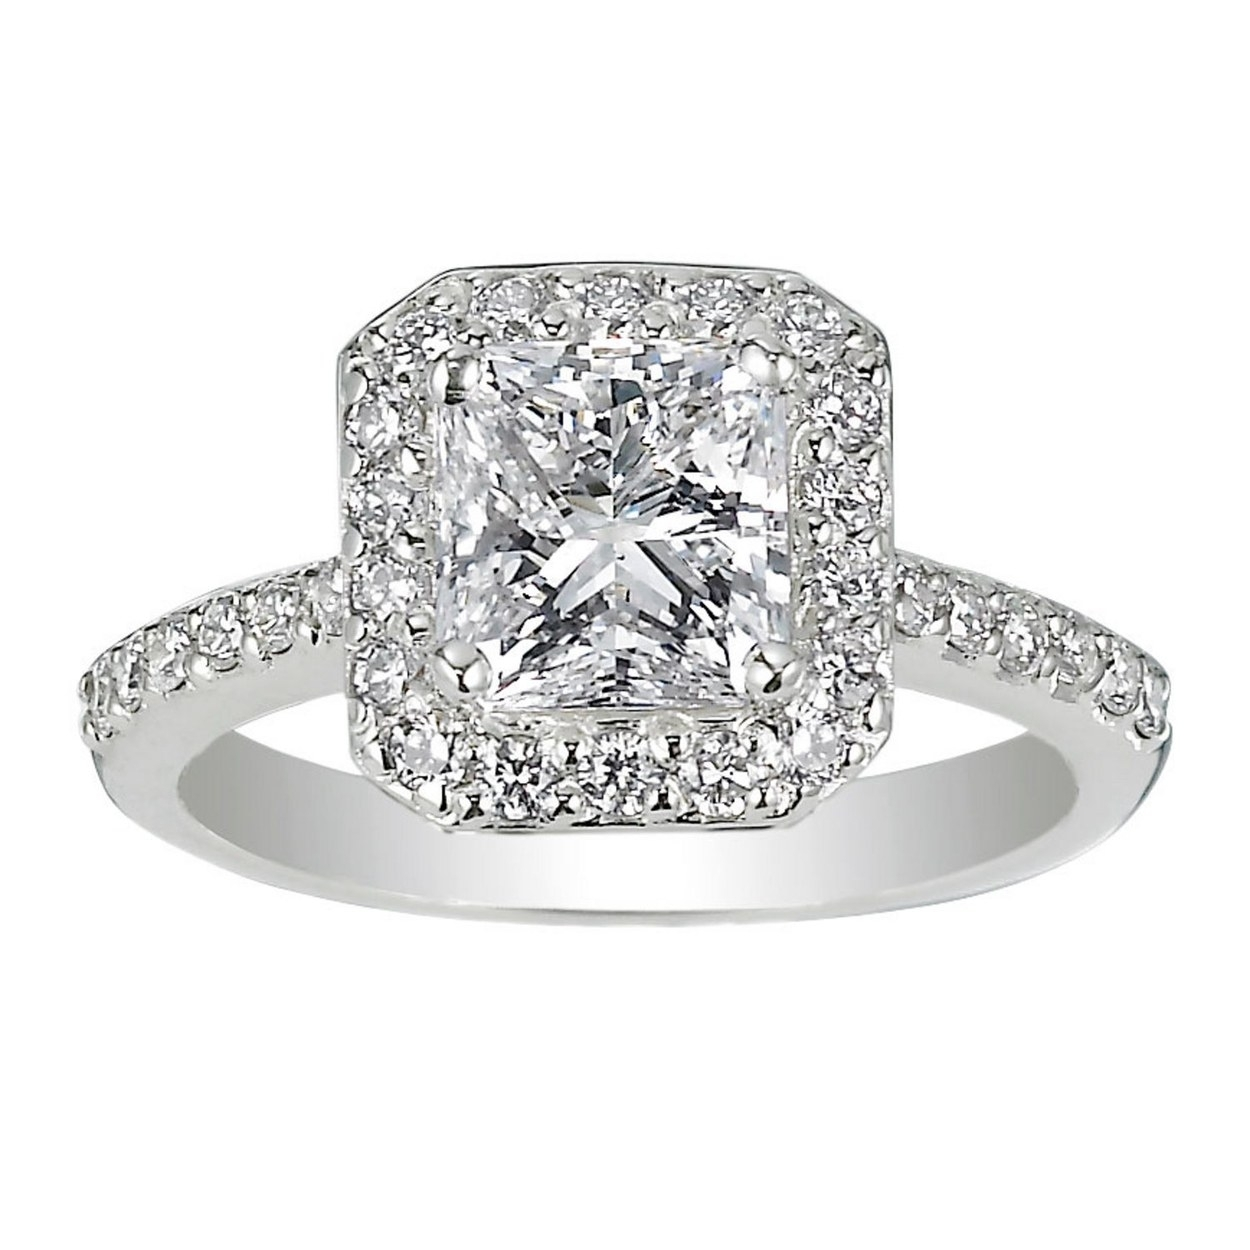 62 Diamond Engagement Rings Under $5,000 | Glamour Regarding Most Up To Date Oval Diamond Double Frame Twist Vintage Style Bridal Rings In 14K White Gold (View 4 of 15)